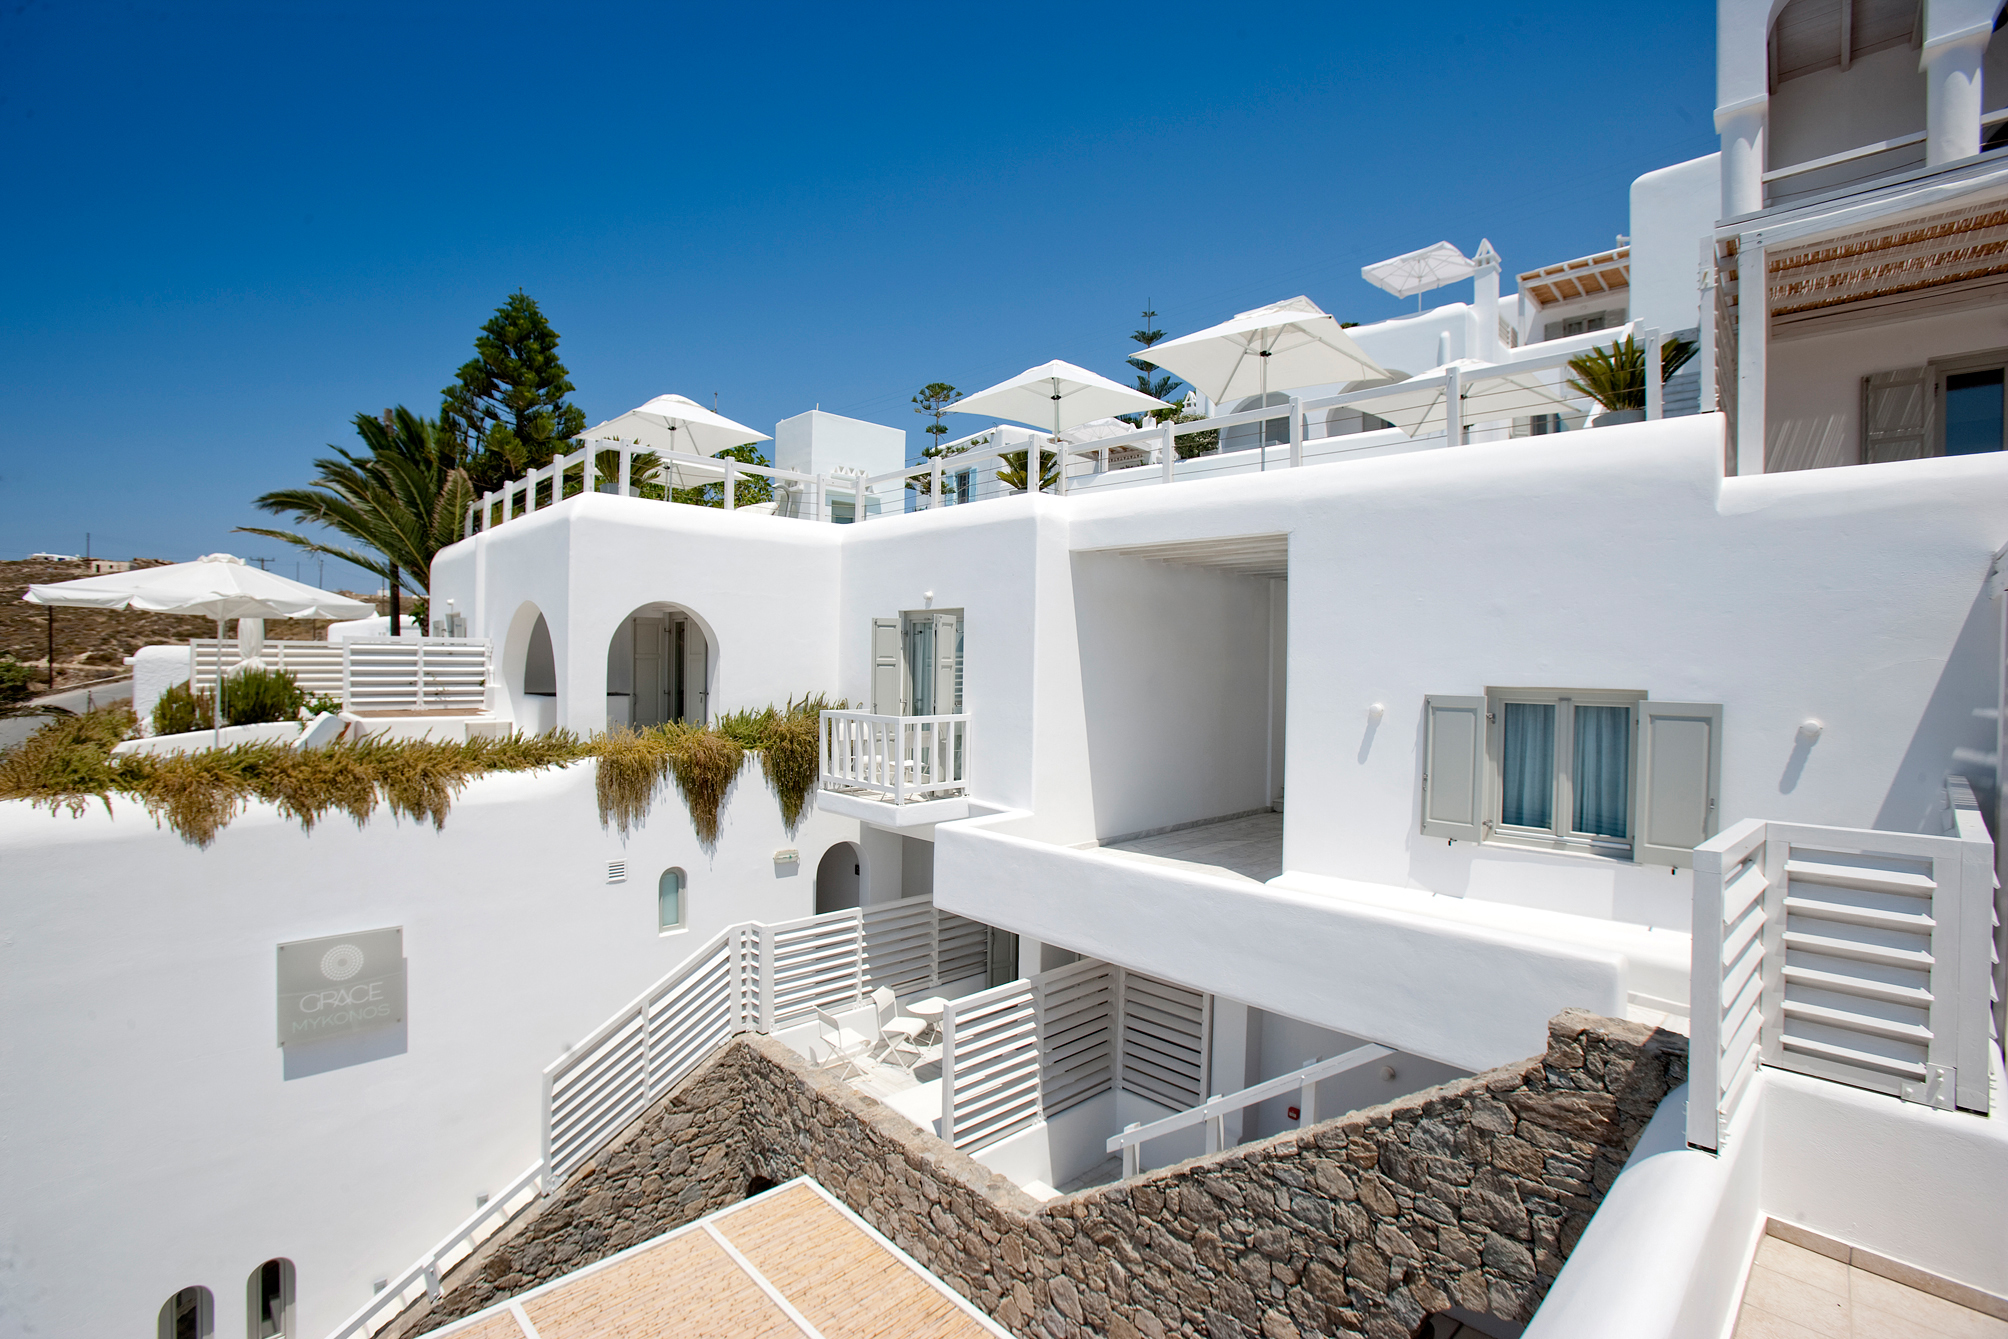 The 20 Best Small Hotels In The Greek Islands (Travel